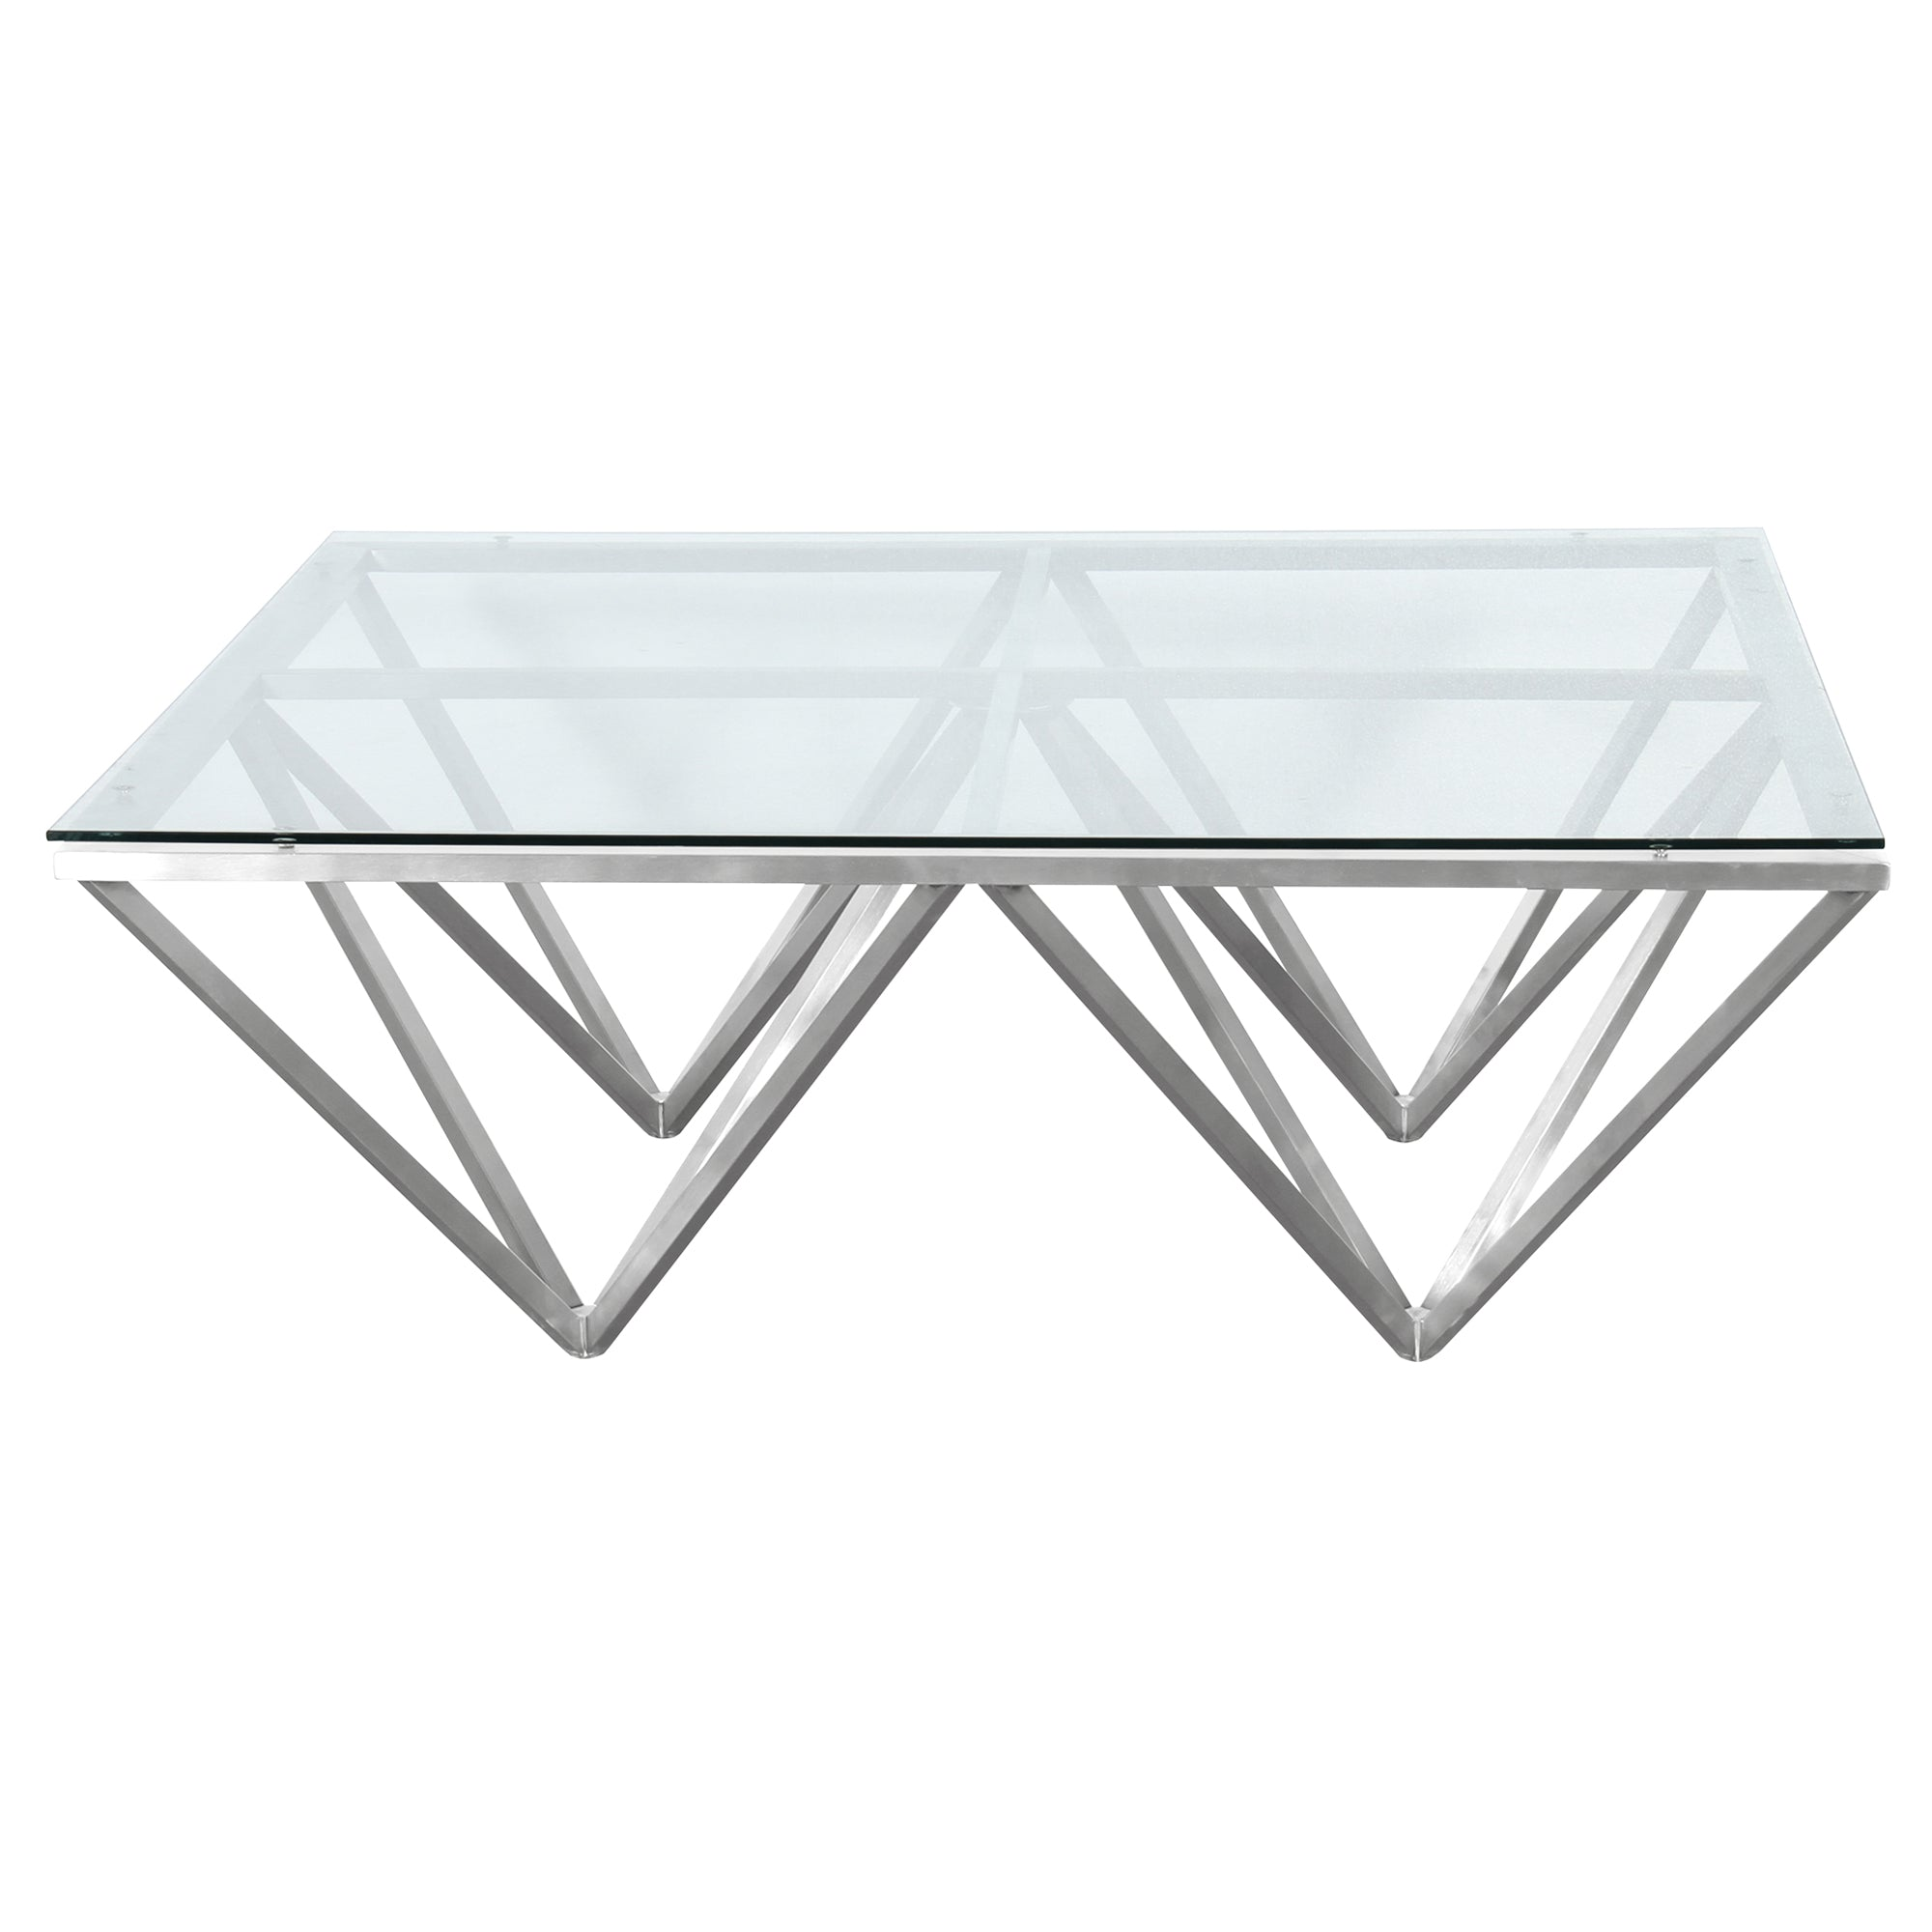 Armen Living Contemporary Rectangular Coffee Table Brushed Stainless Steel Tempered Glass Top Cascade